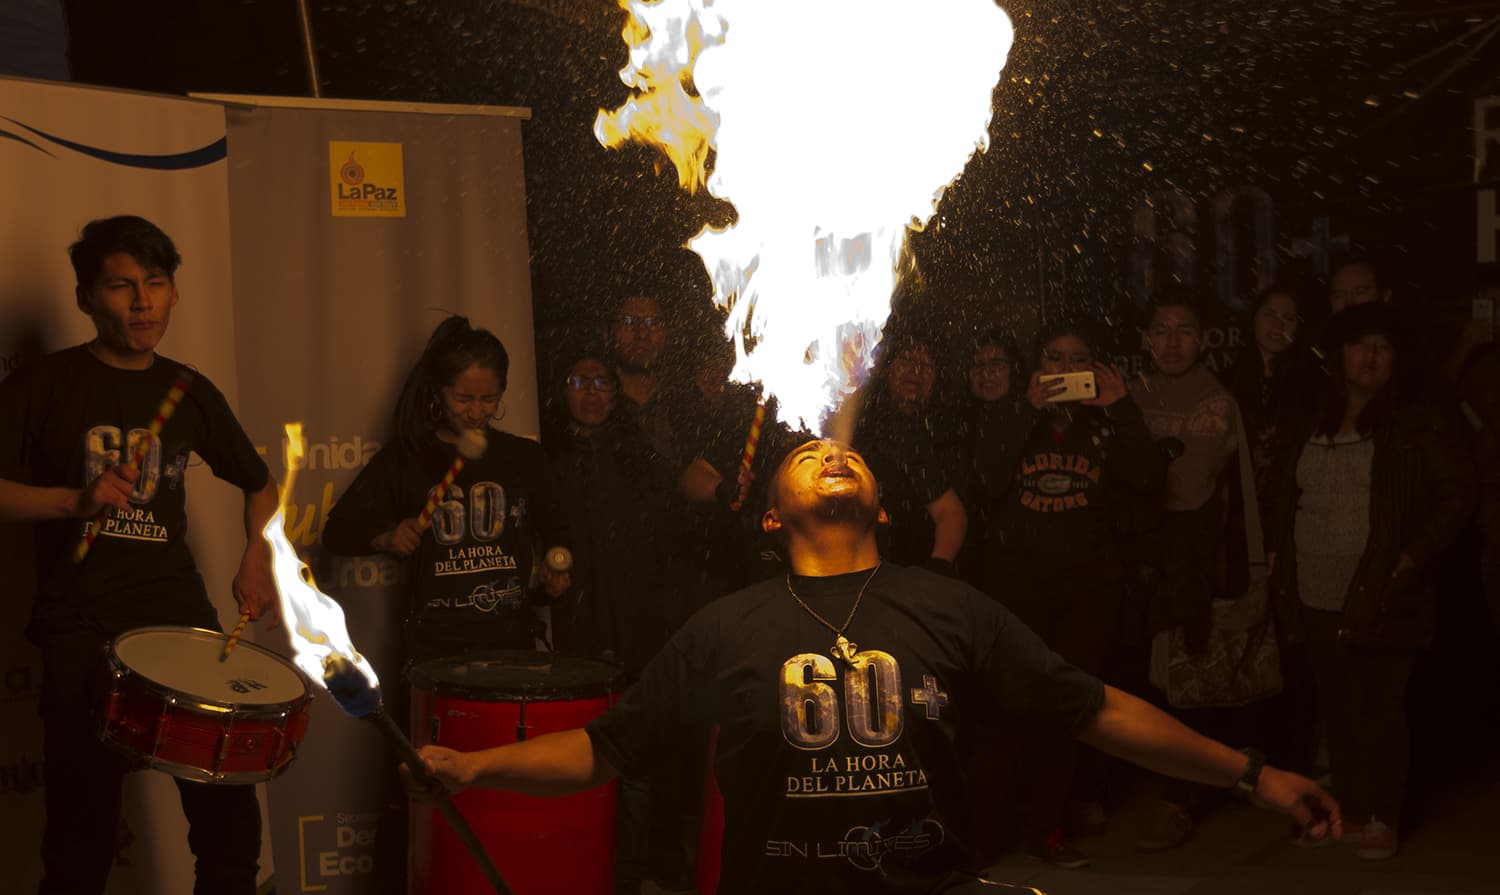 A fire eater performs during the Earth Hour celebrations in La Paz, Bolivia. ─ AP